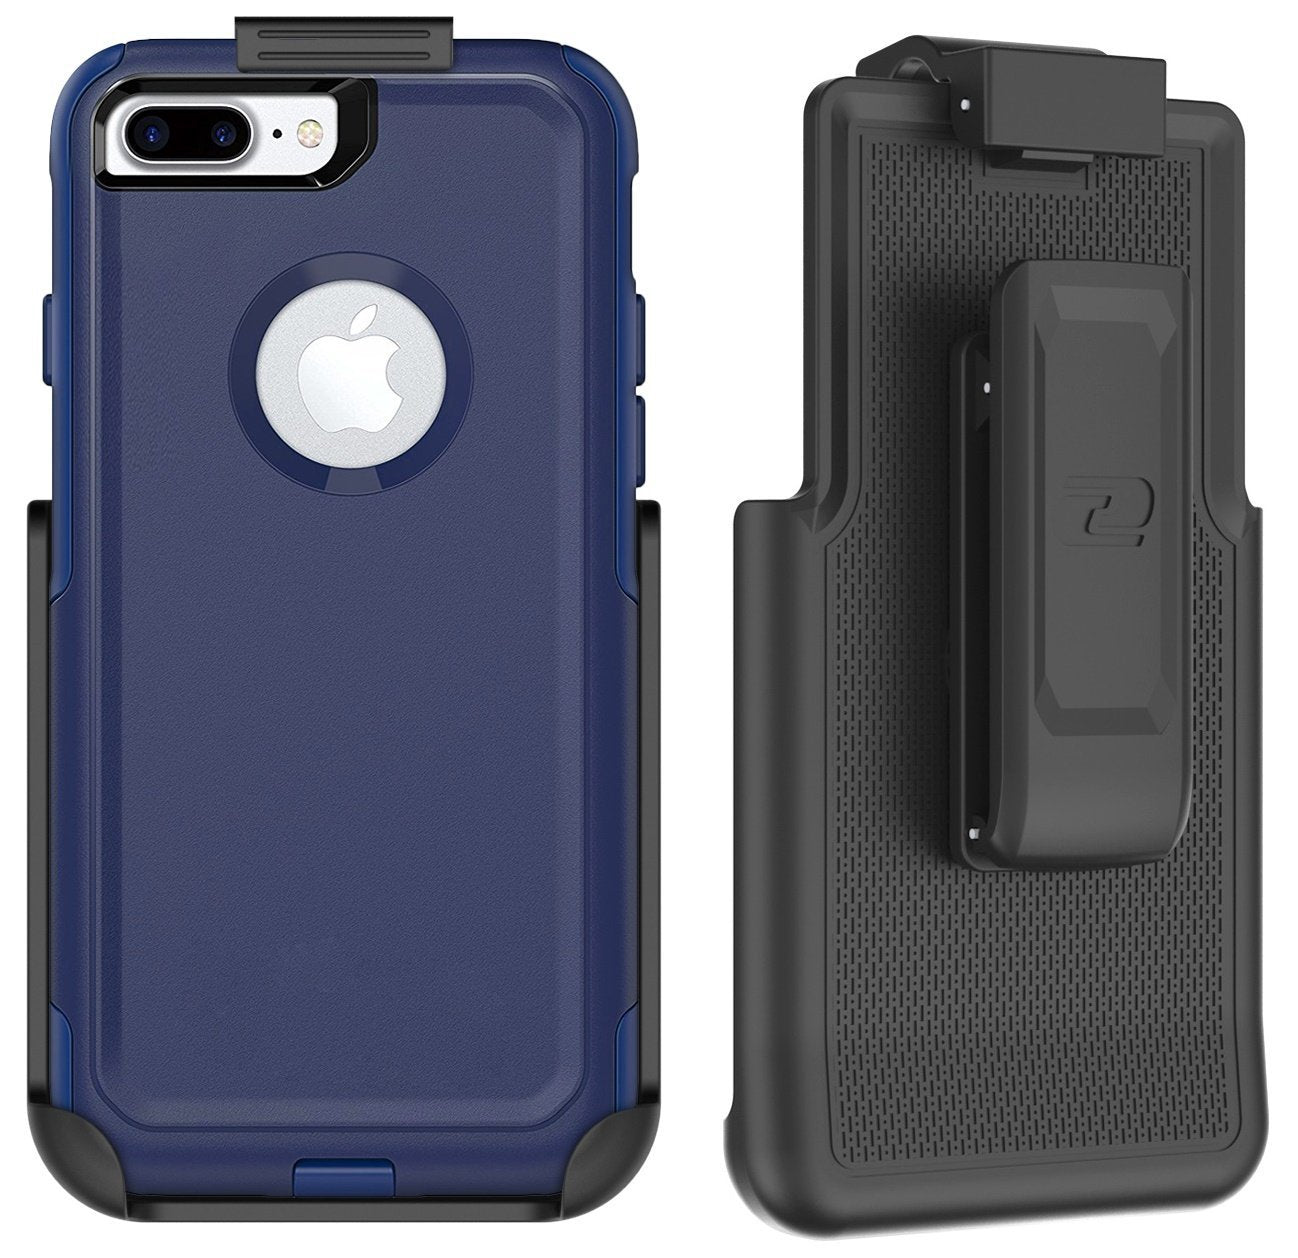 "Encased Belt Clip Holster for OTTERB0X COMMUTER Series Case - iPhone 8 Plus & iPhone 7 Plus 5.5"" (case not included)"